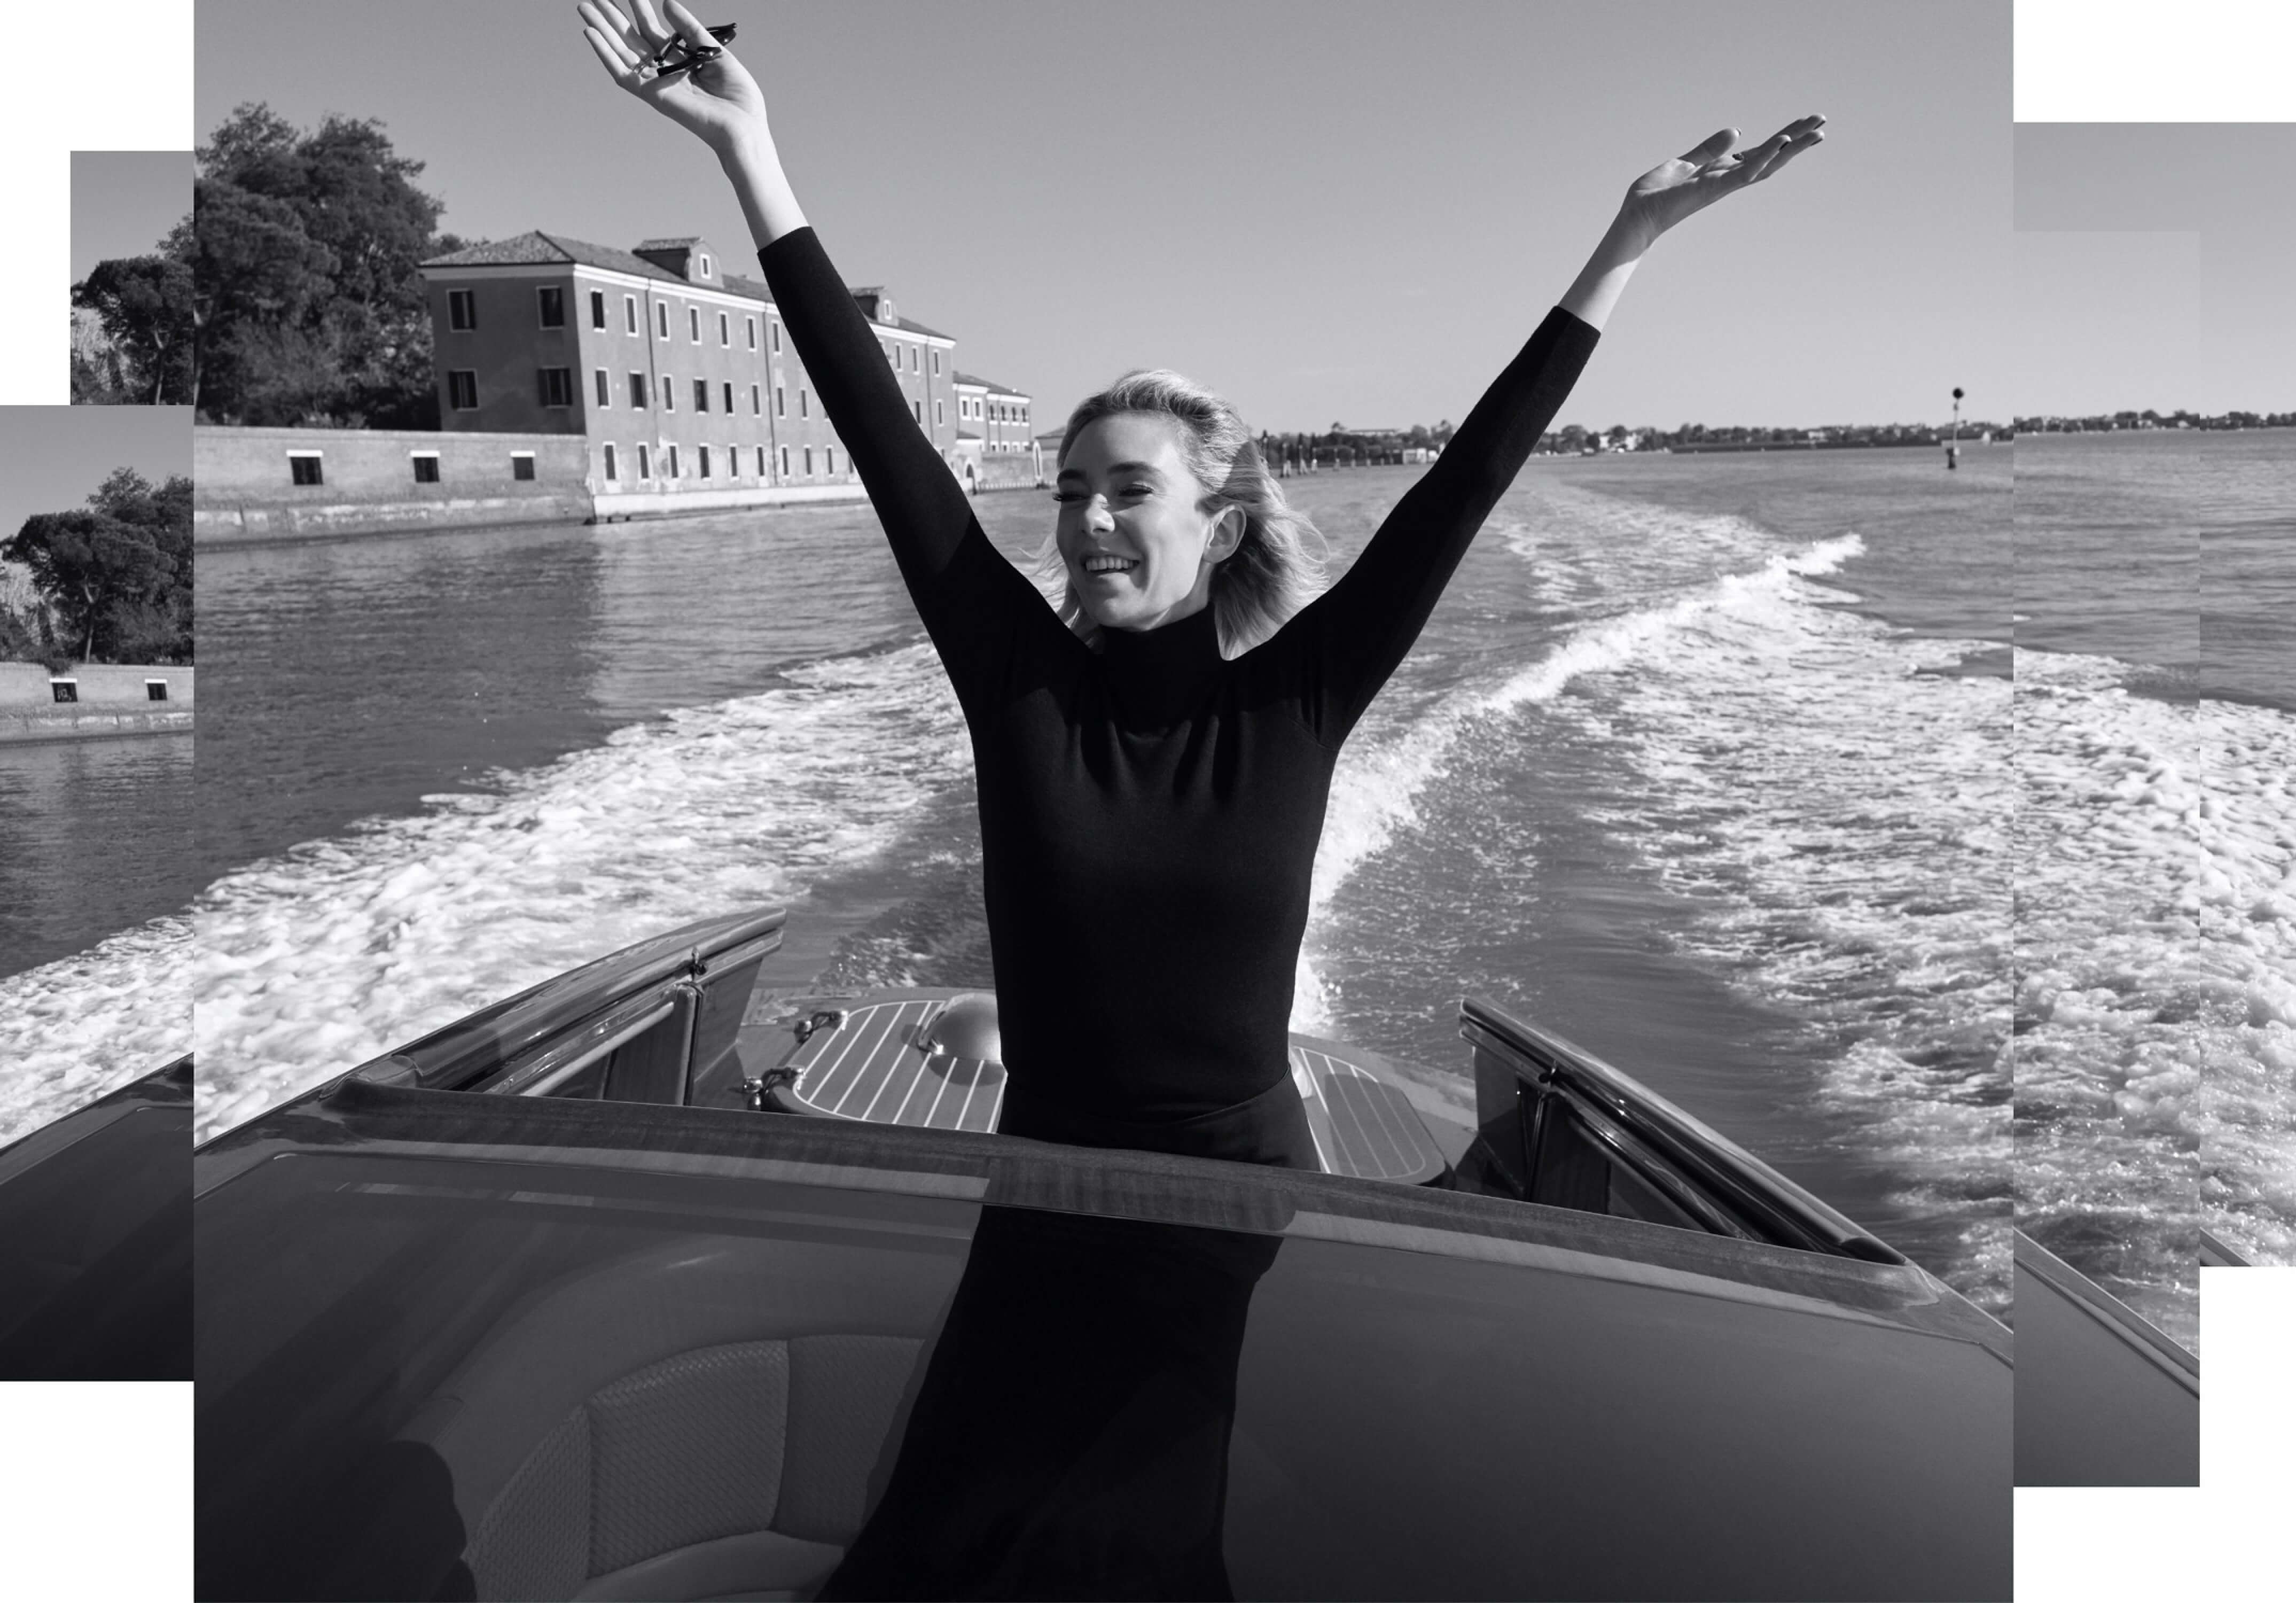 Vanessa Kirby sails through the waters of Venice in this black-and-white shot. She wears a chic black turtleneck and throws her hands to the sky in a gesture of joy.